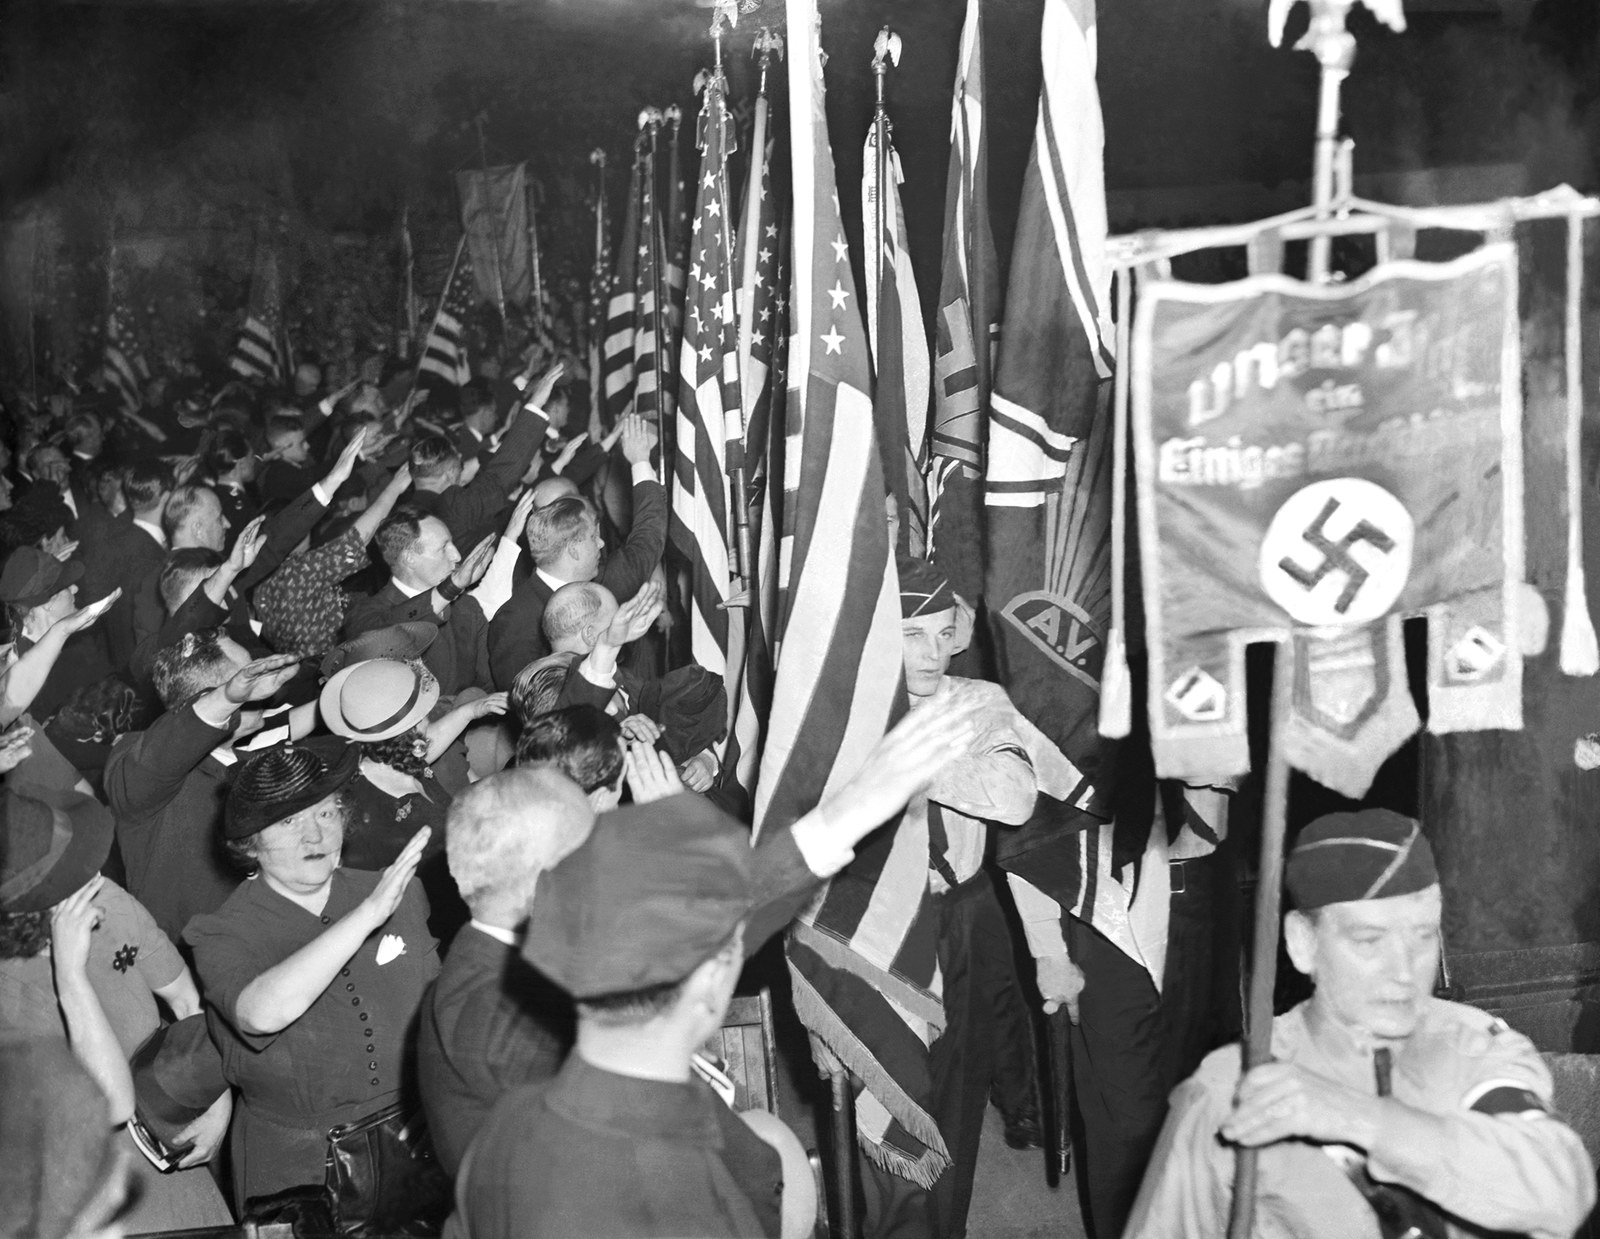 the history of the nazi party Rise of the nazi party: in power programme length 1 hour screening details monday 10 august at 930am est/ nz this programme describes and discusses the me.